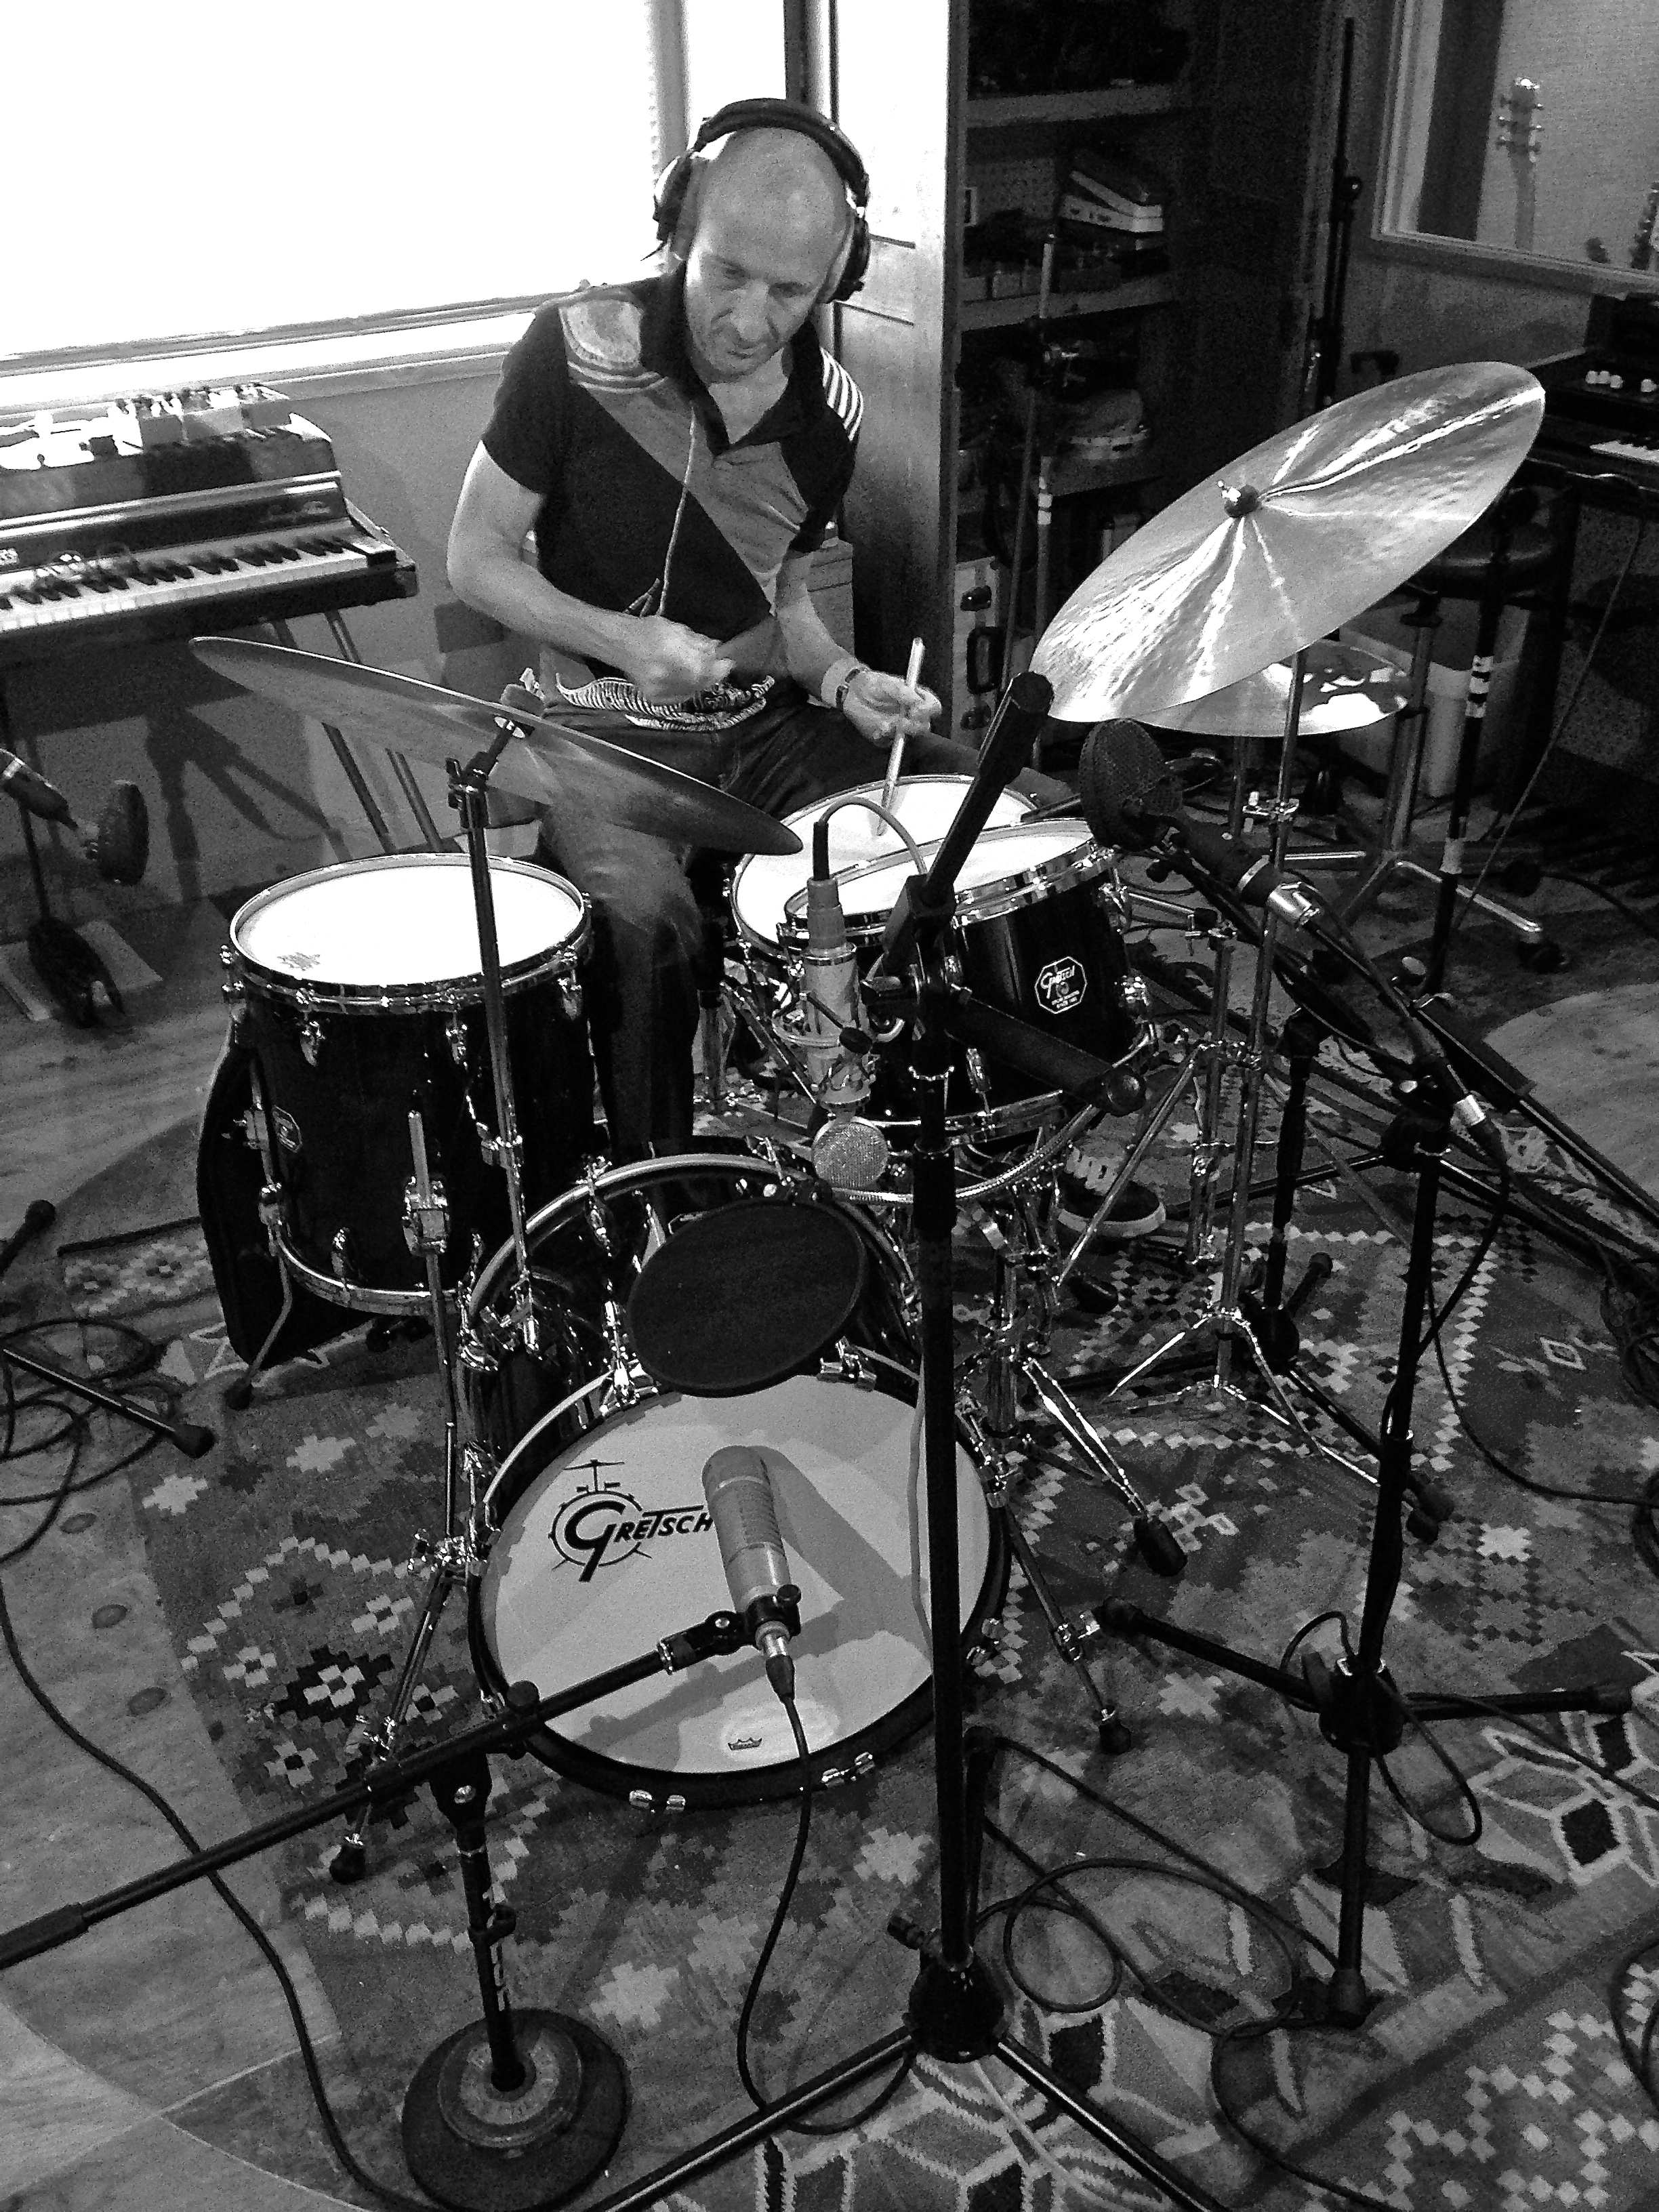 THE GRETSCH BE BOP KIT